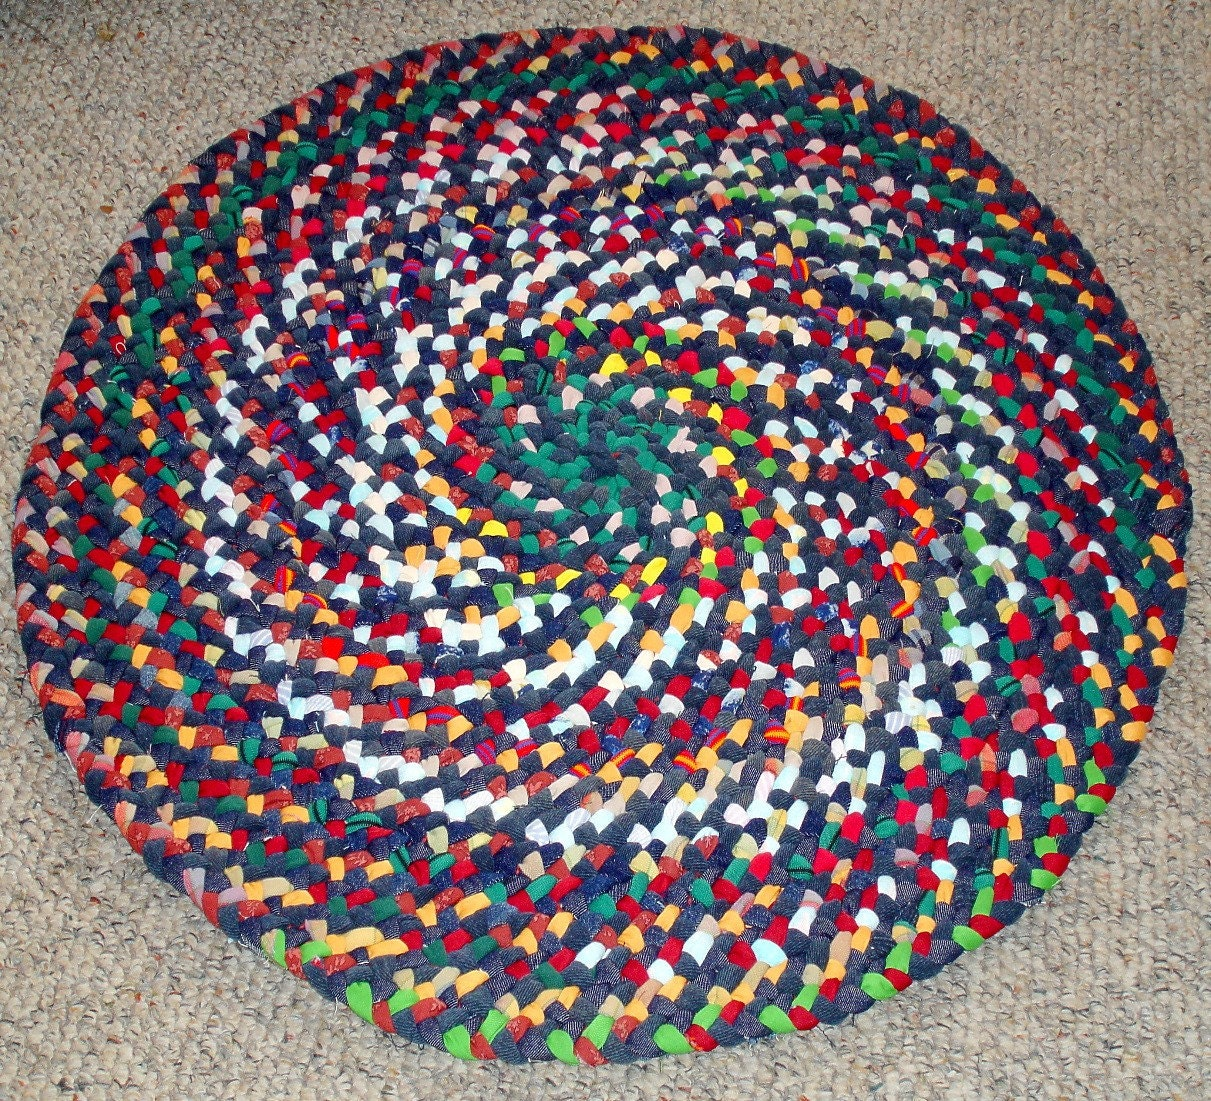 30 In Round Braided Rug From Repurposed Jeans Amp Cotton Reds